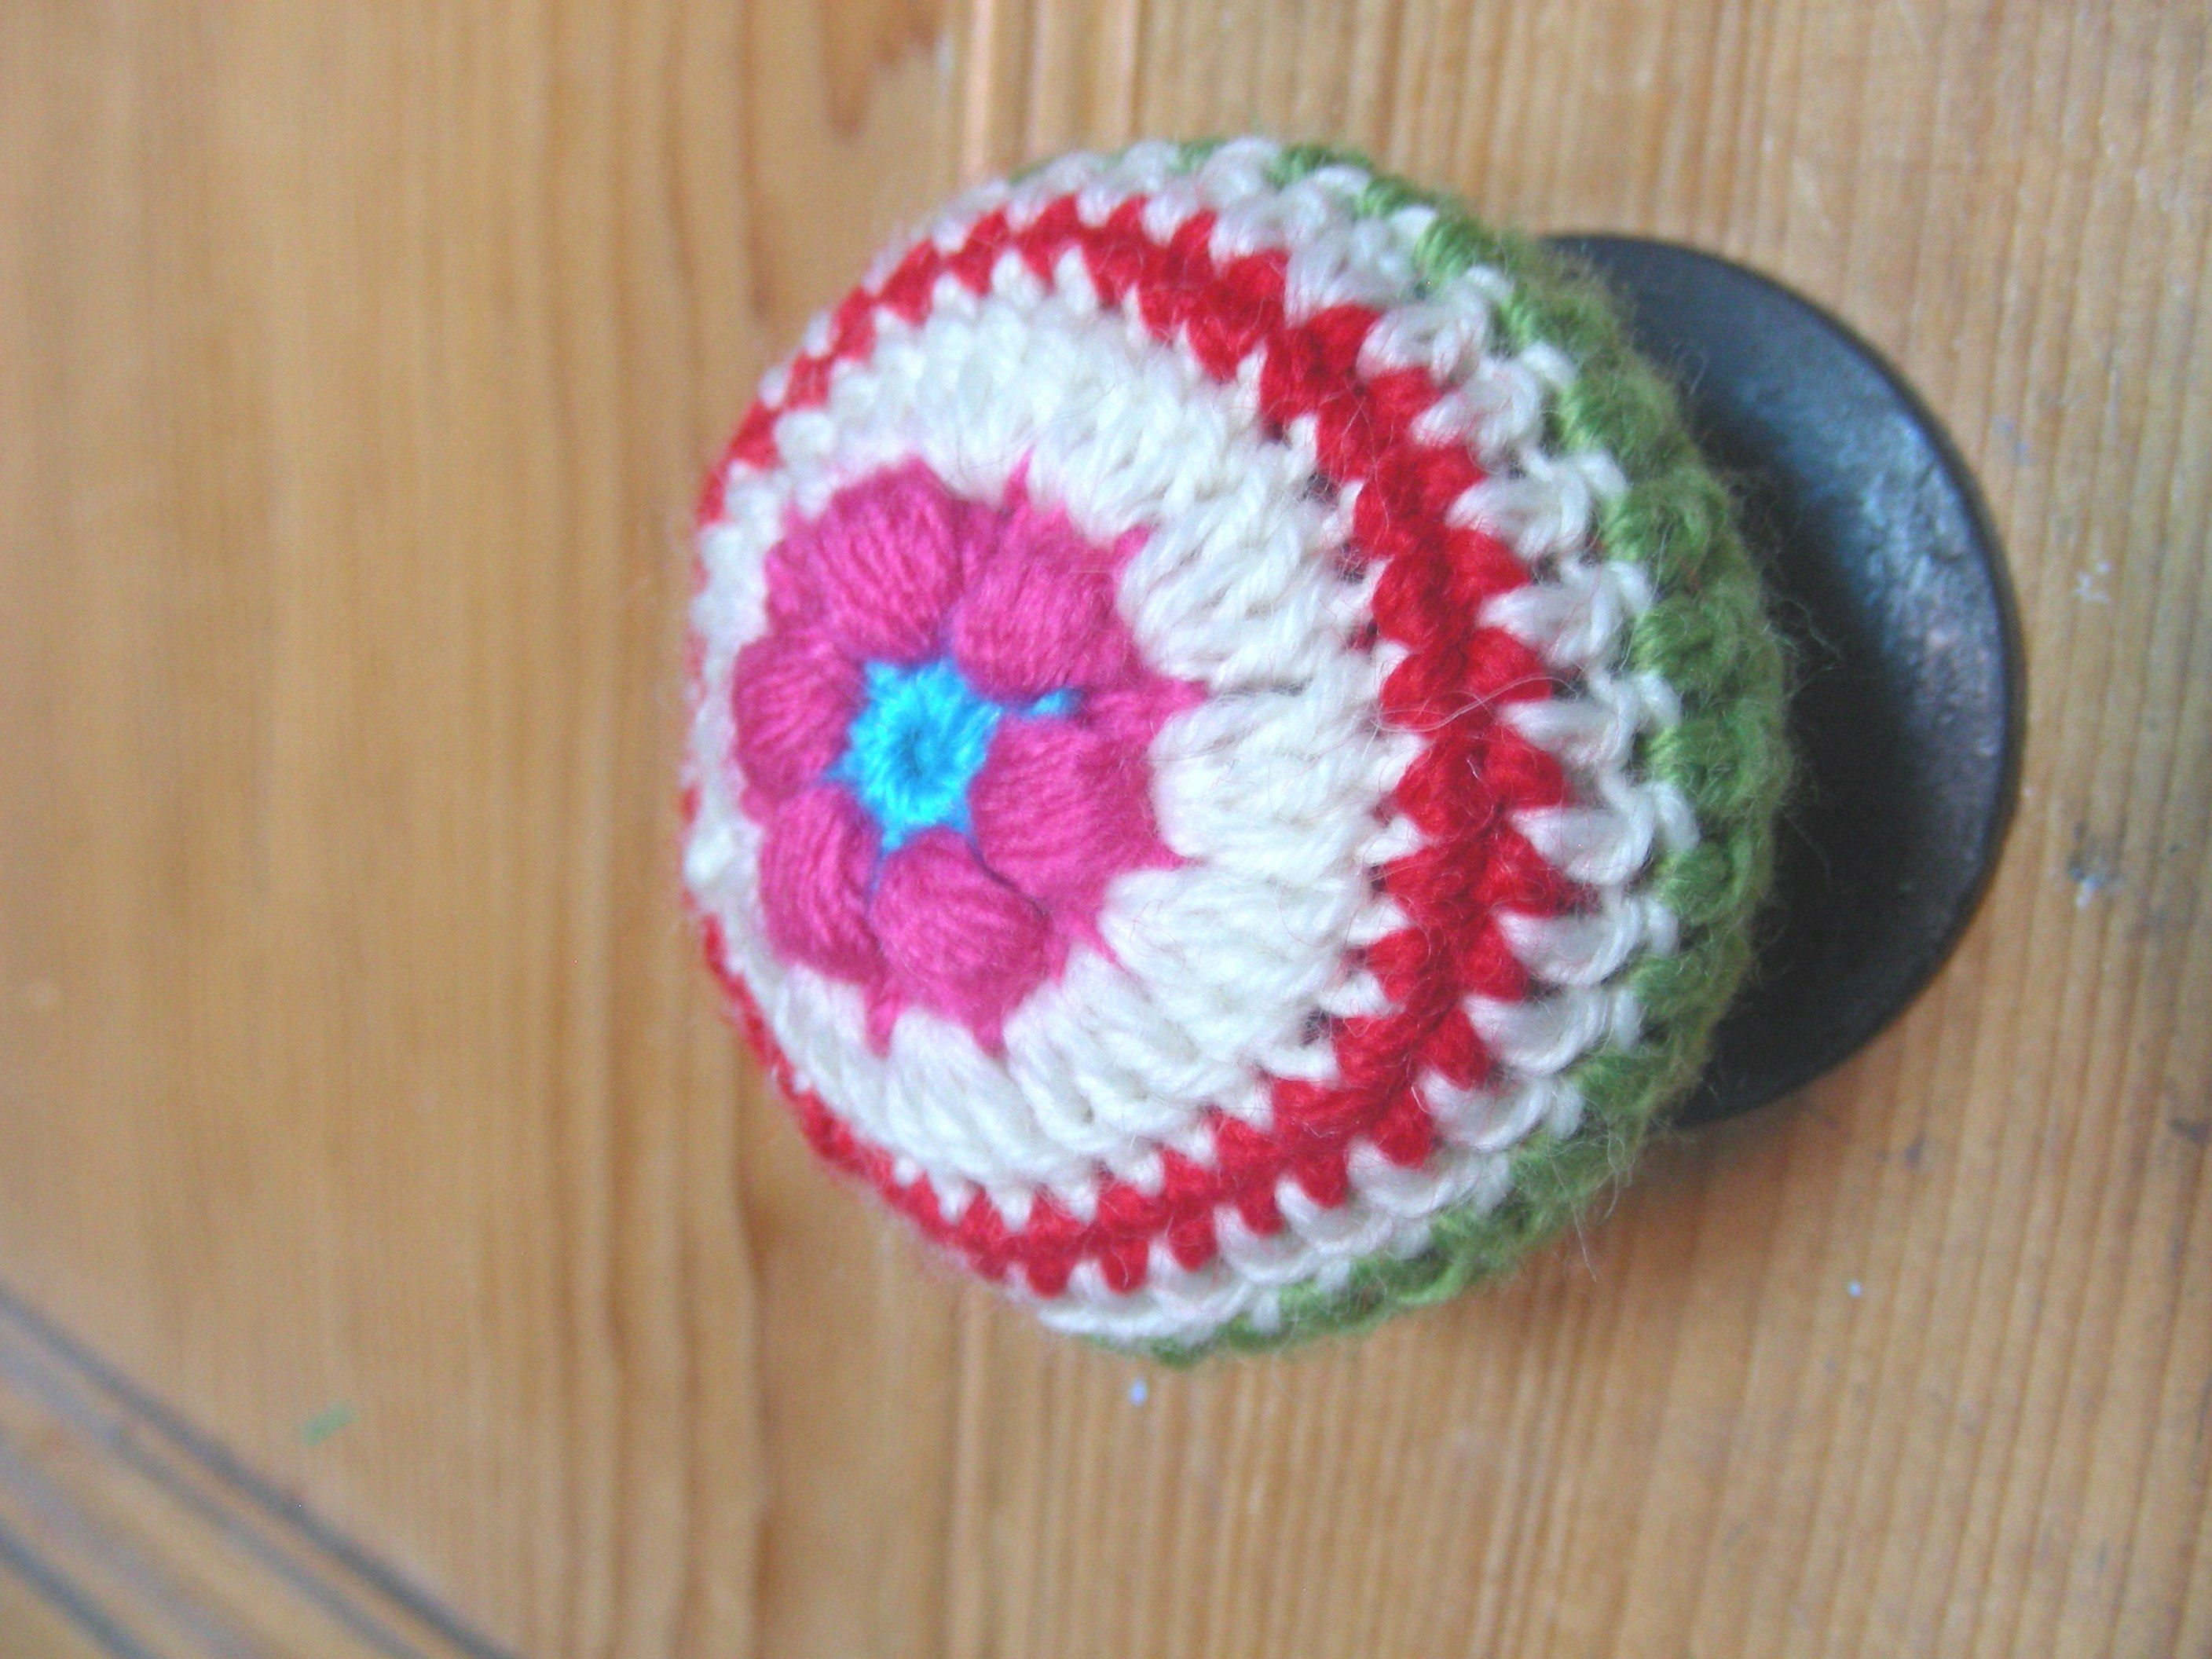 Crochet doorknob covers! | Knitting & crochet | Pinterest ...